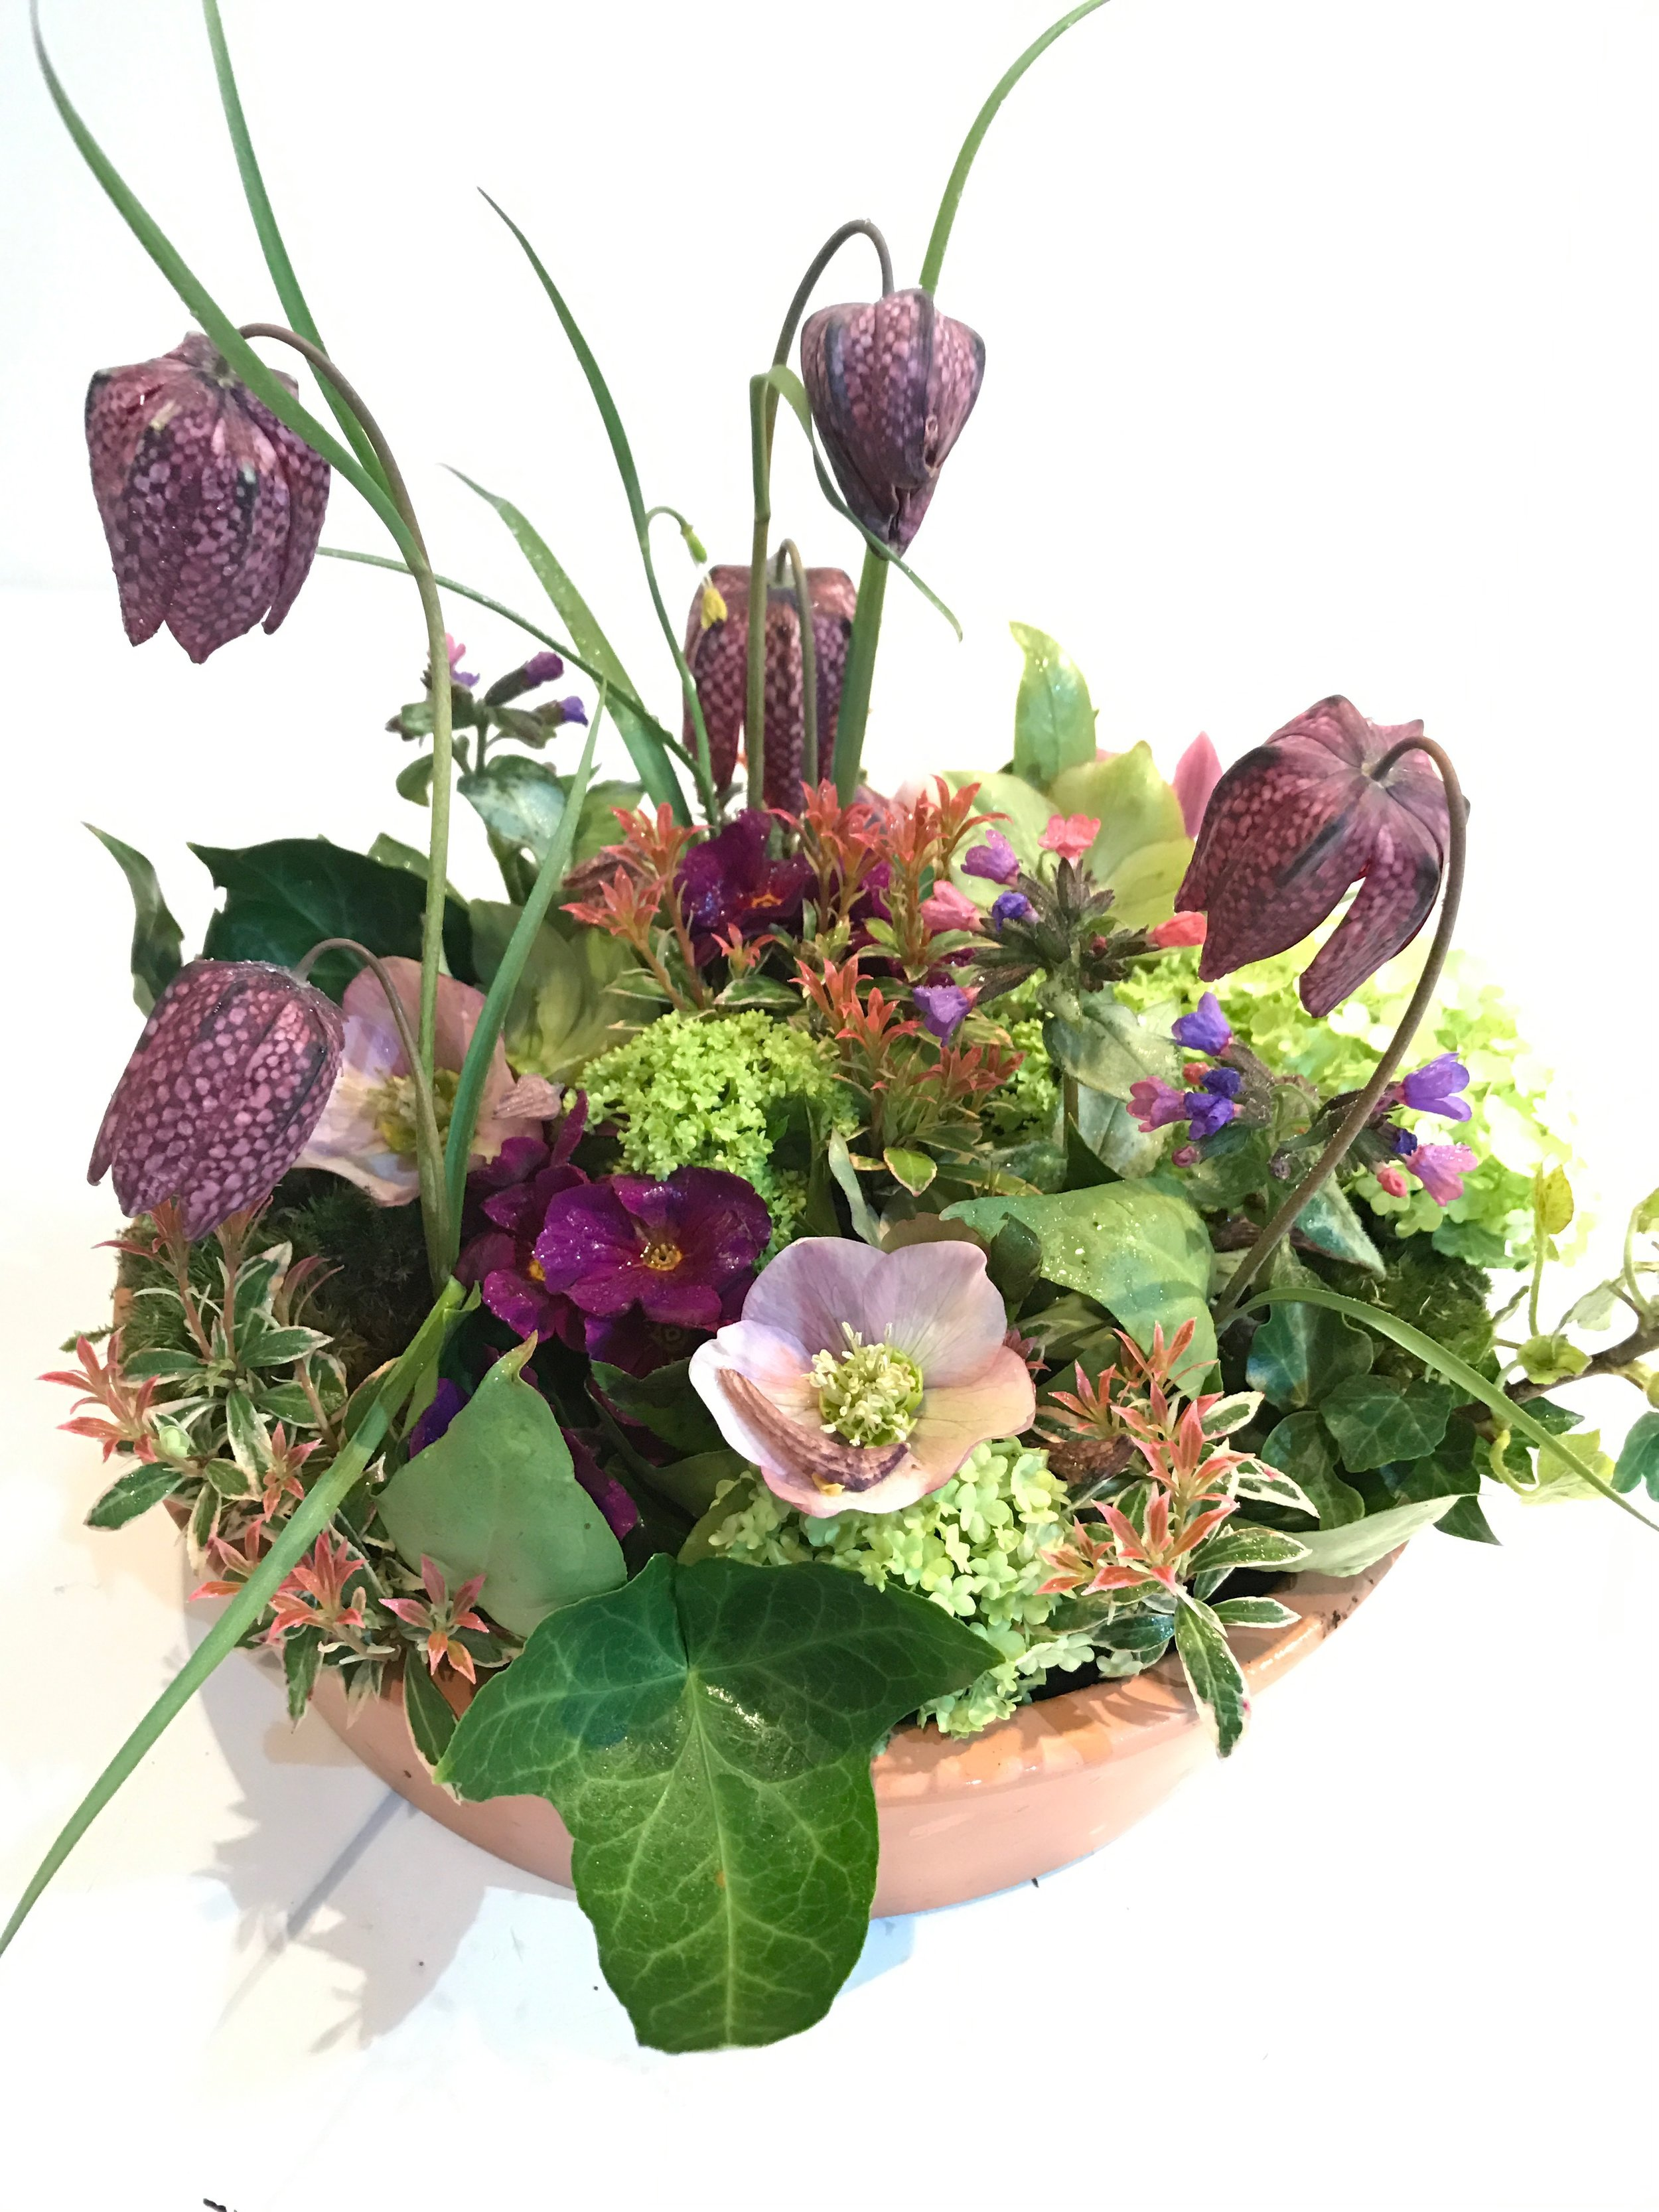 Spring table design -the workshop design will be similar to this; colours and flowers may vary depending availability at the time of ordering.